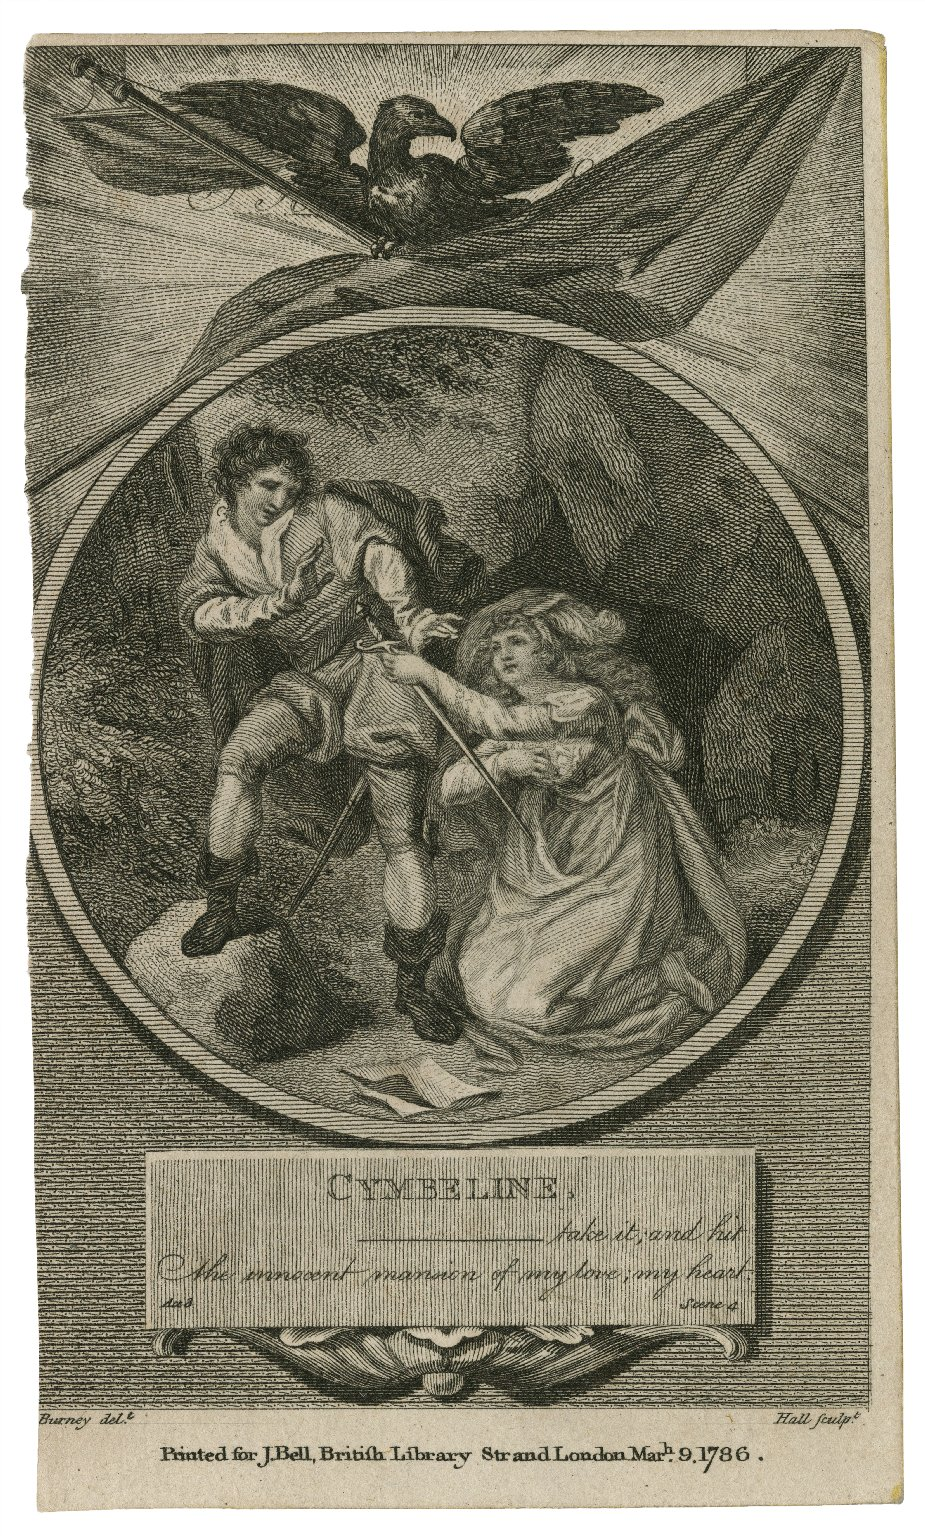 Cymbeline, Take it, and hit the innocent mansion of my love, my heart, act 3, scene 4 [graphic] / Burney delt. ; Hall sculpt.